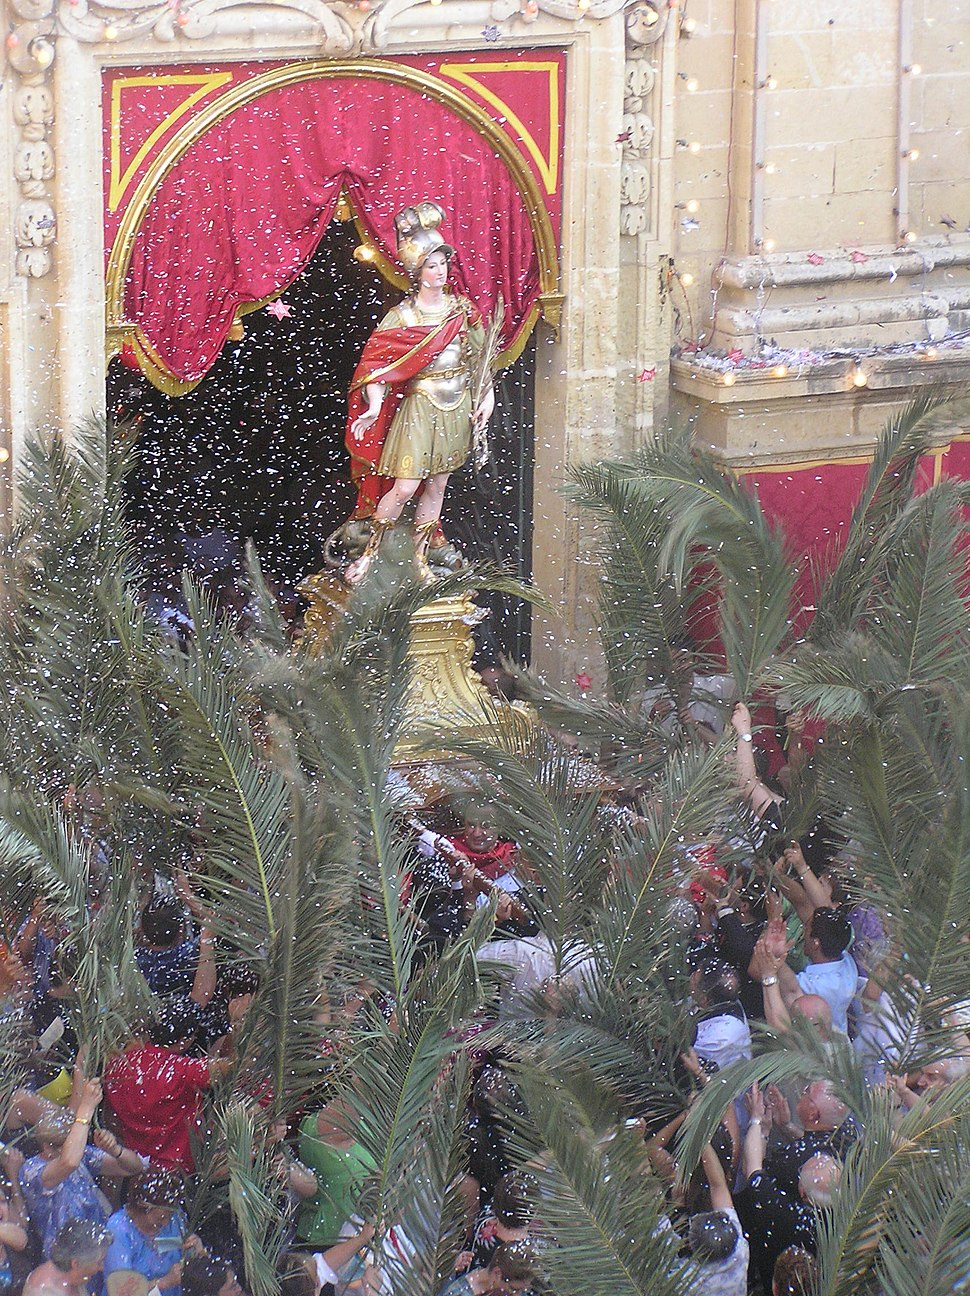 The statue of St. George issuing from the Basilica on the third Sunday of July